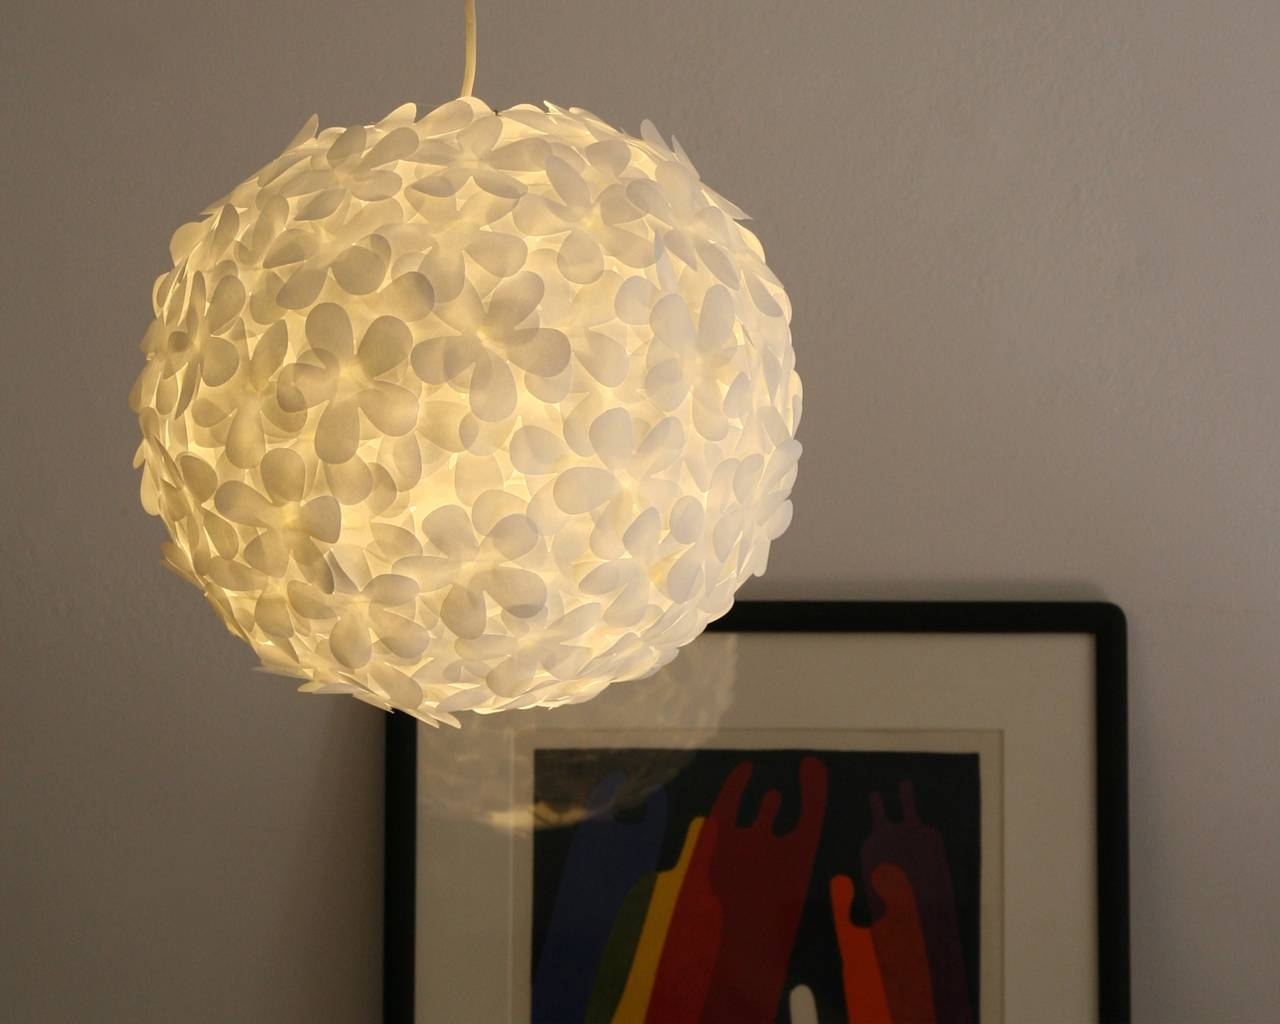 White Paper Flower Pendant Light | The 3 R's Blog within White Flower Pendant Lights (Image 15 of 15)